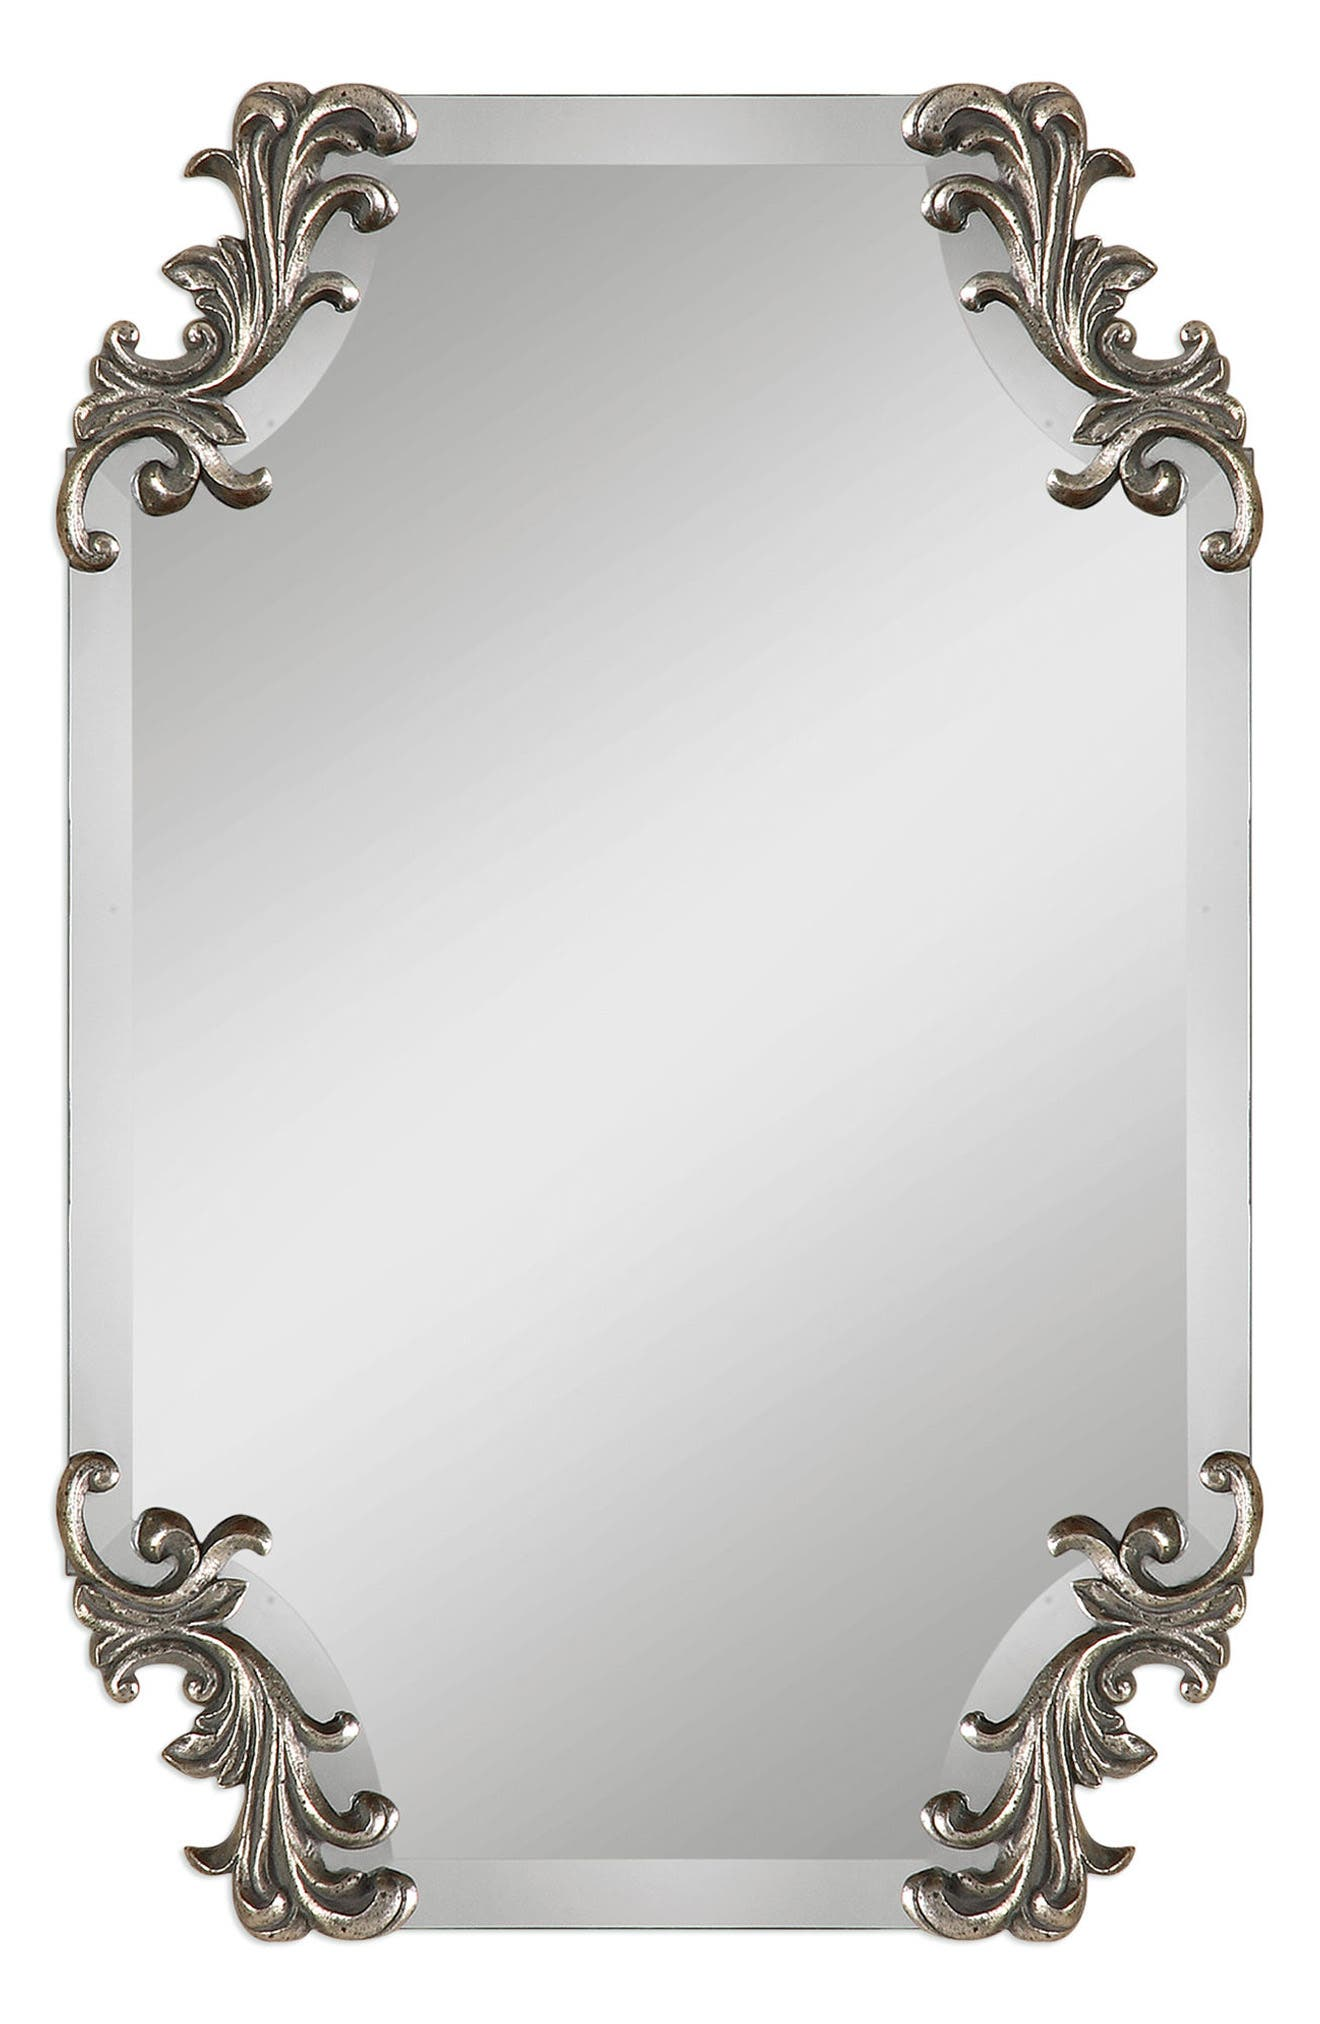 Alternate Image 1 Selected - Uttermost Andretta Baroque Wall Mirror